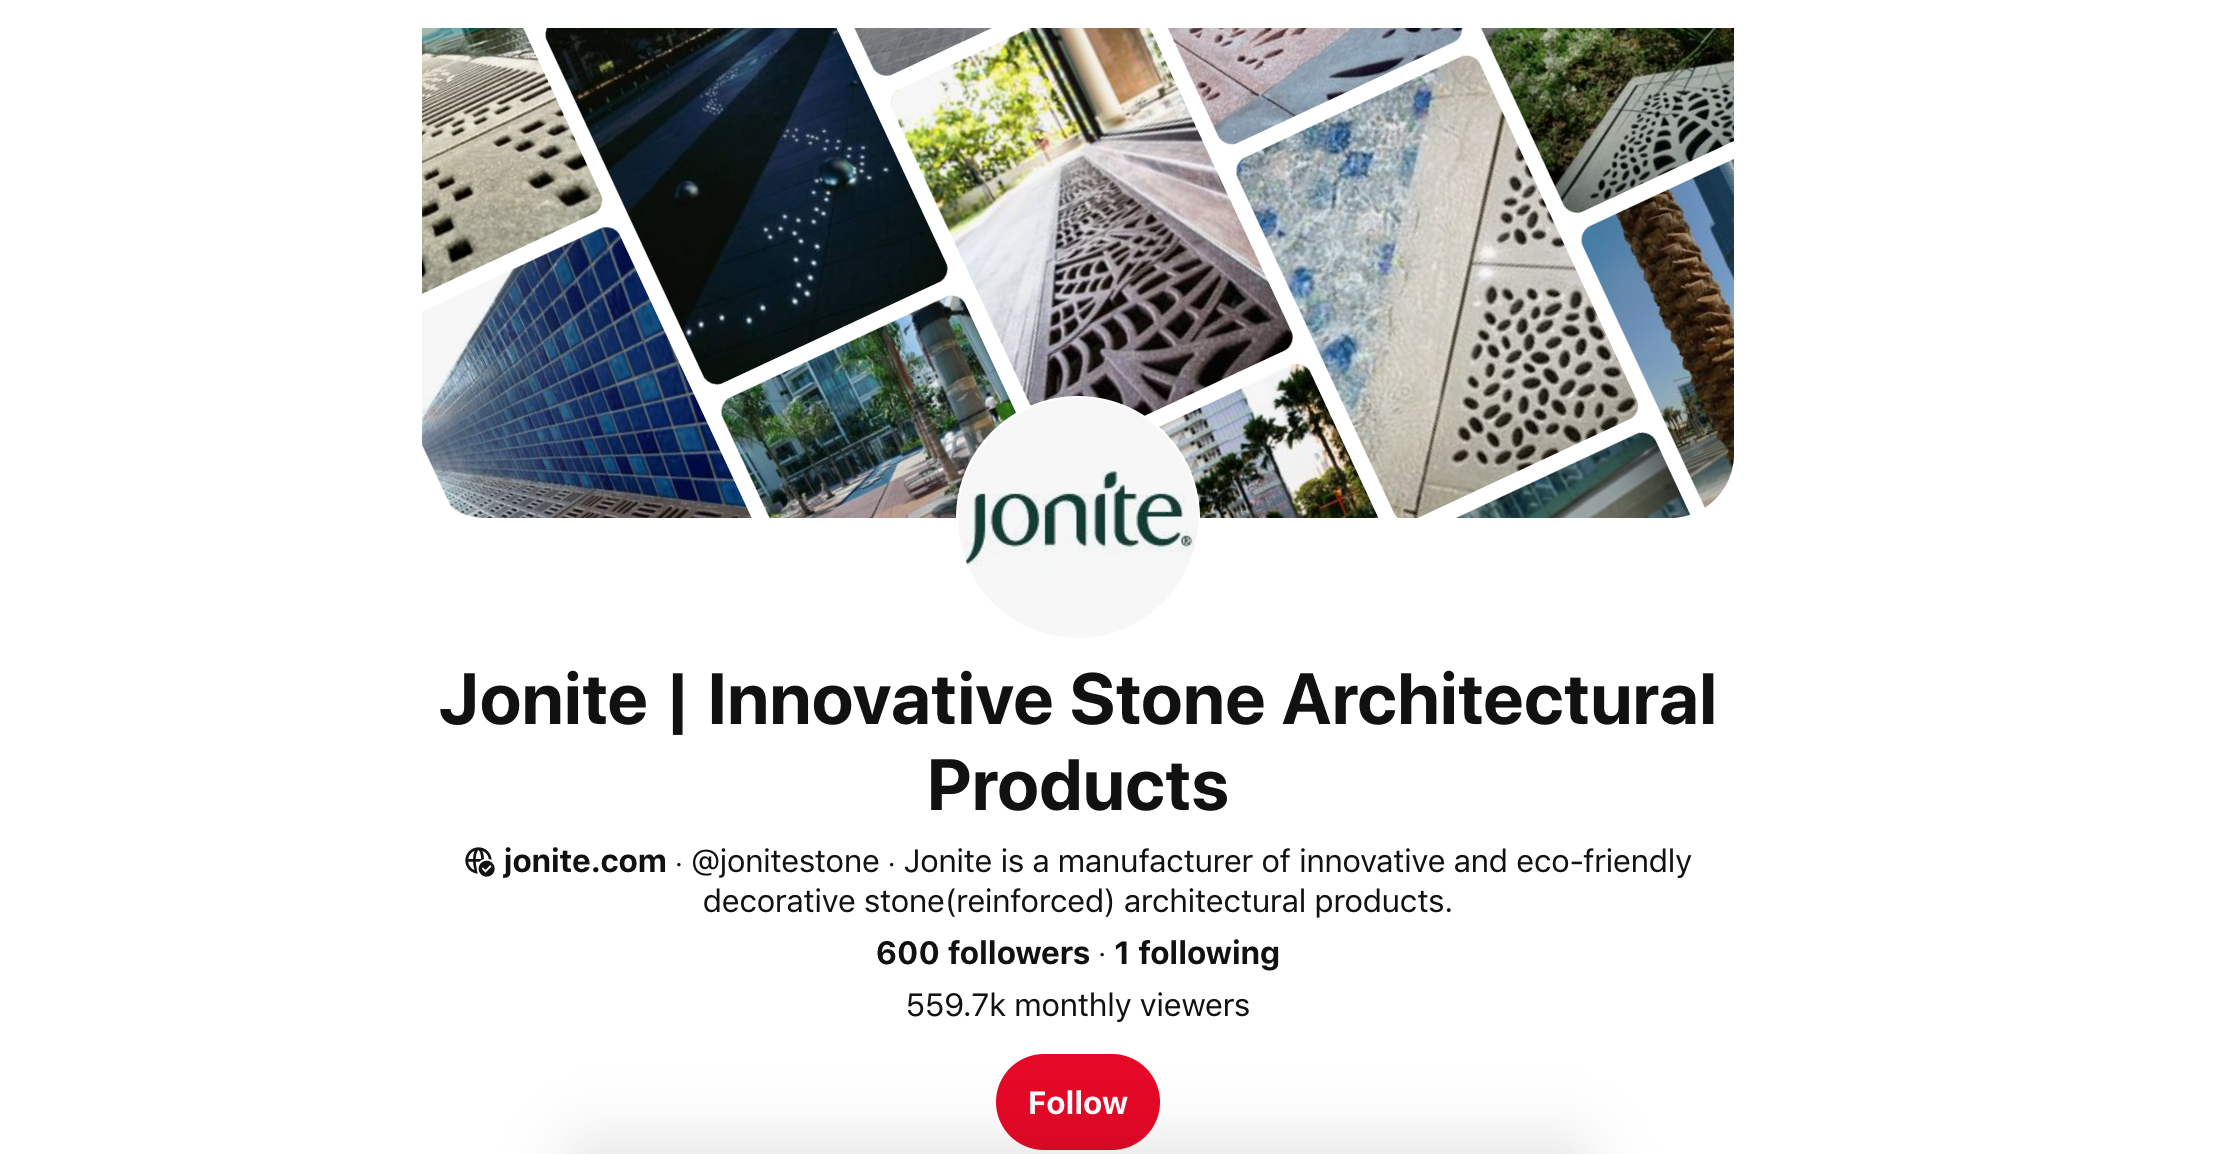 jonite-pinterest